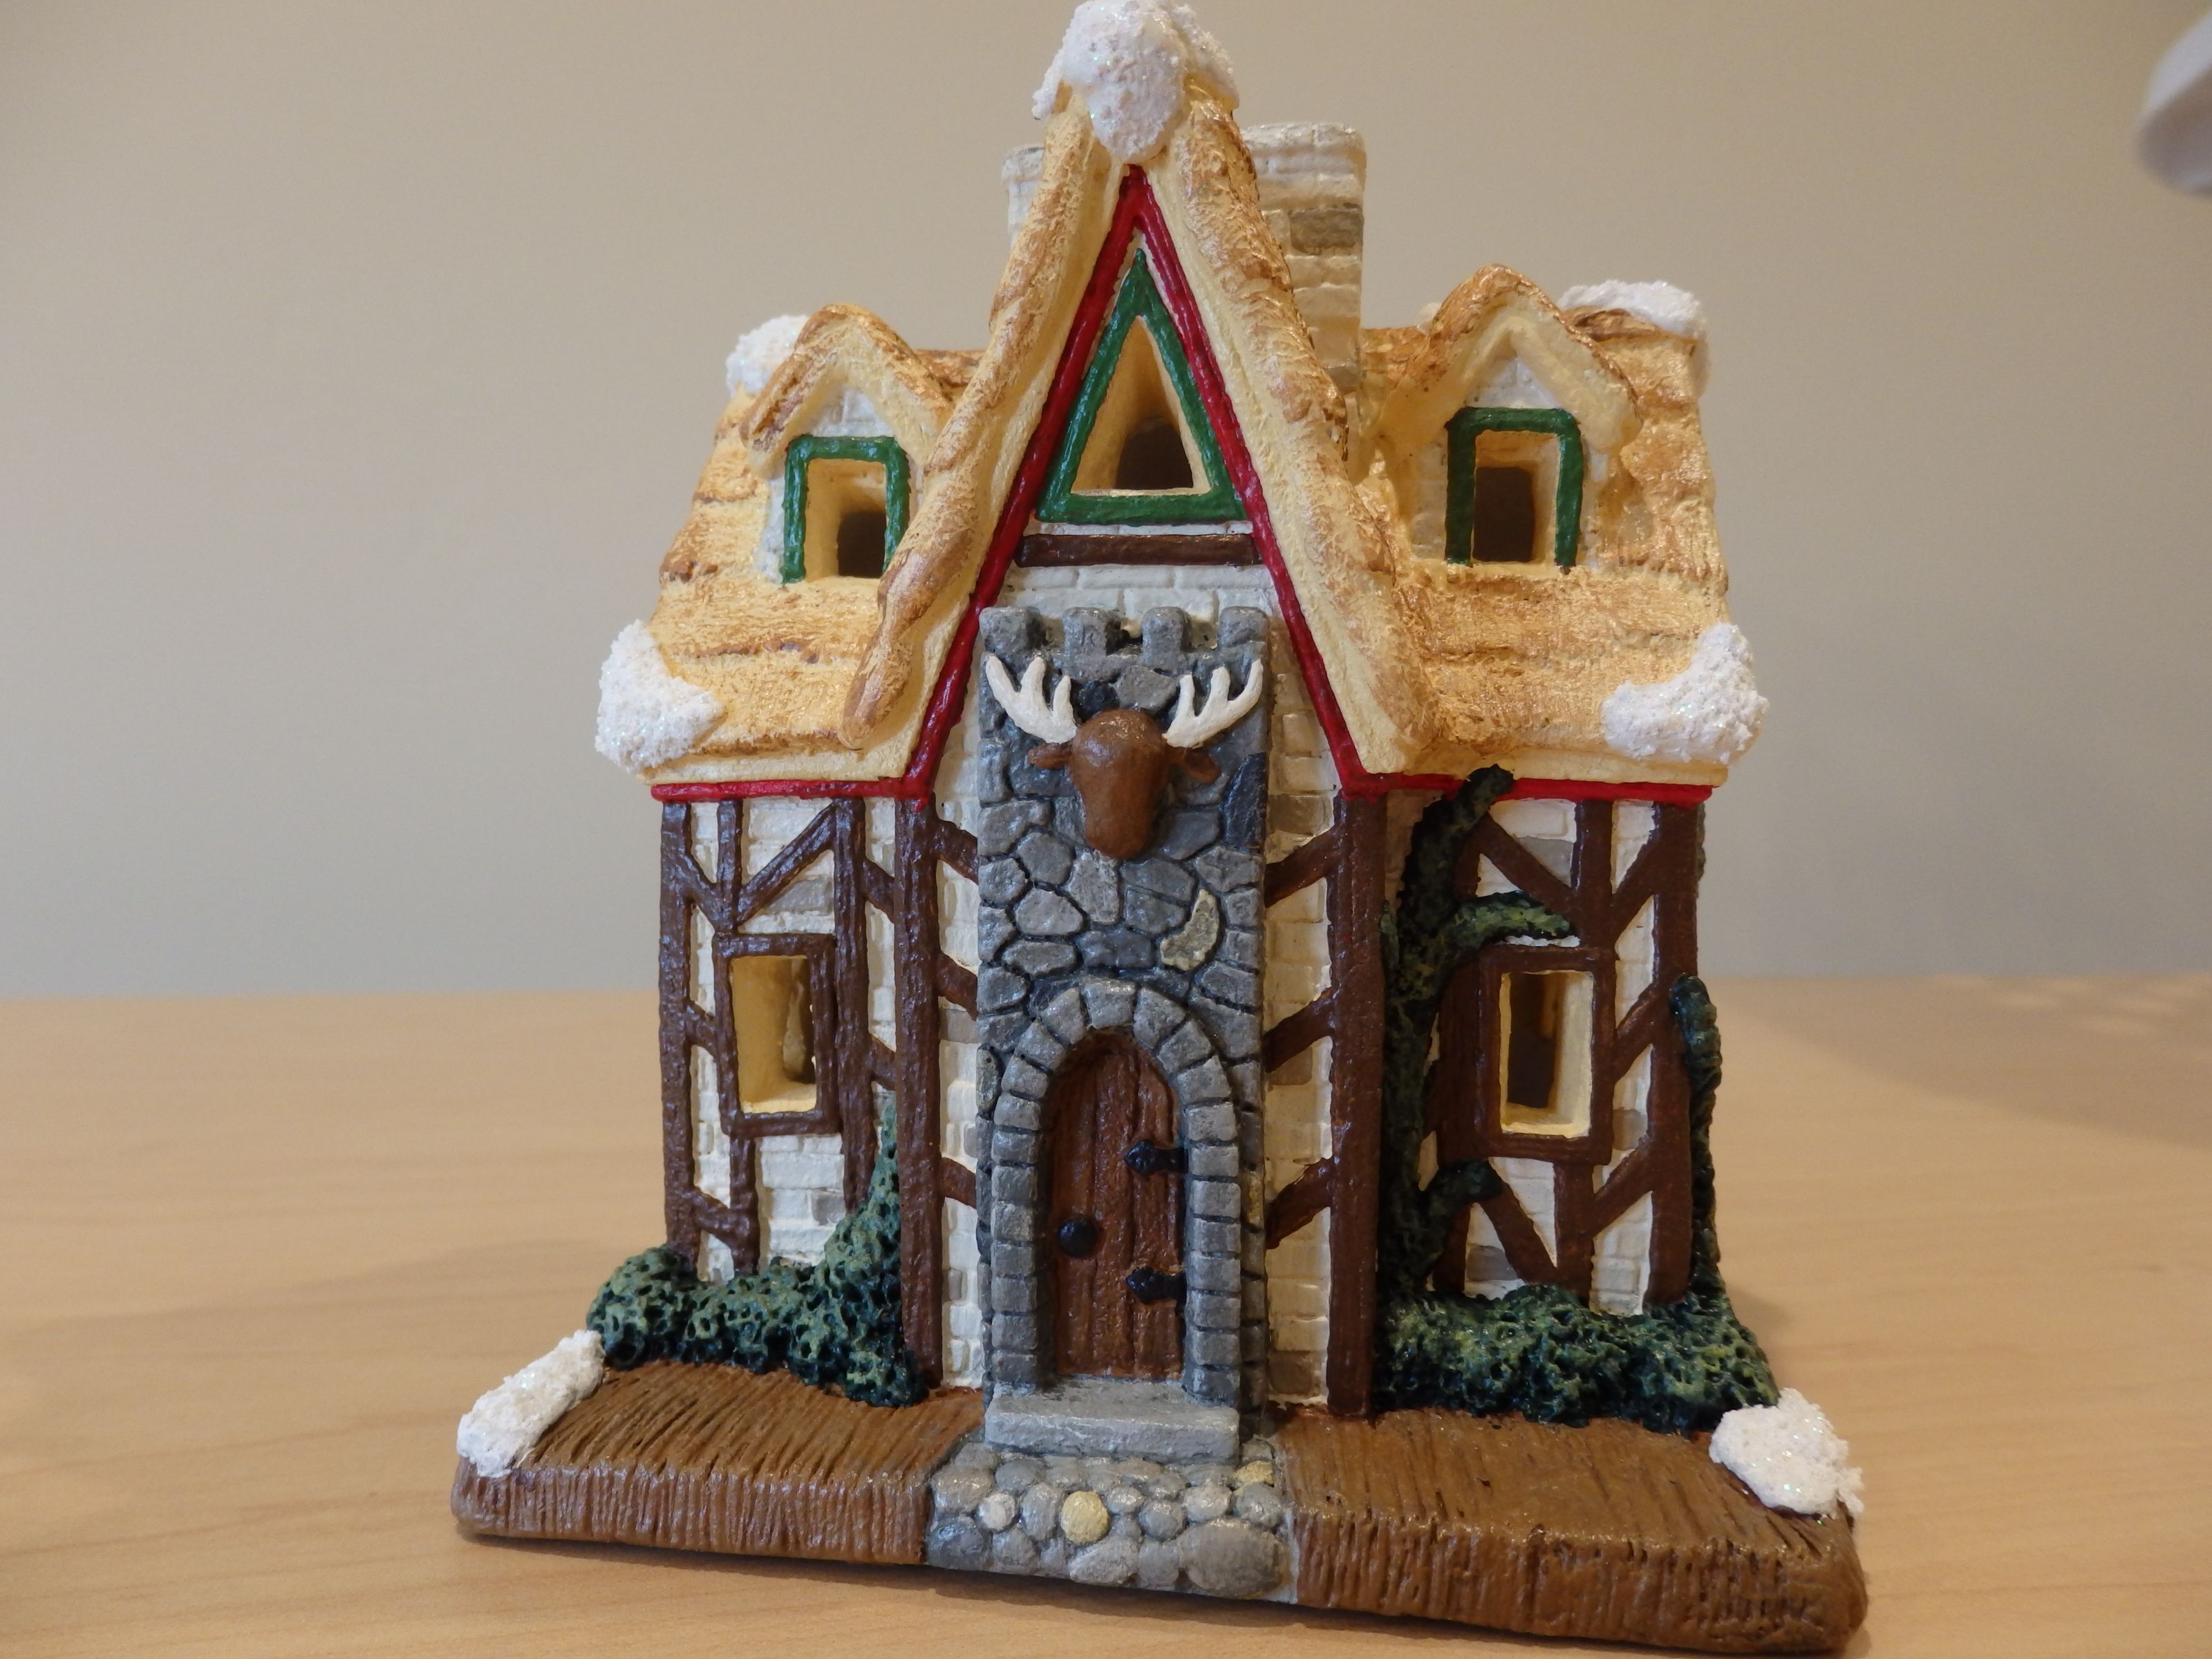 Ceramic christmas houses to paint - Hand Painted California Creations Plaster Christmas Lodge That I Painted For My Christmas Village